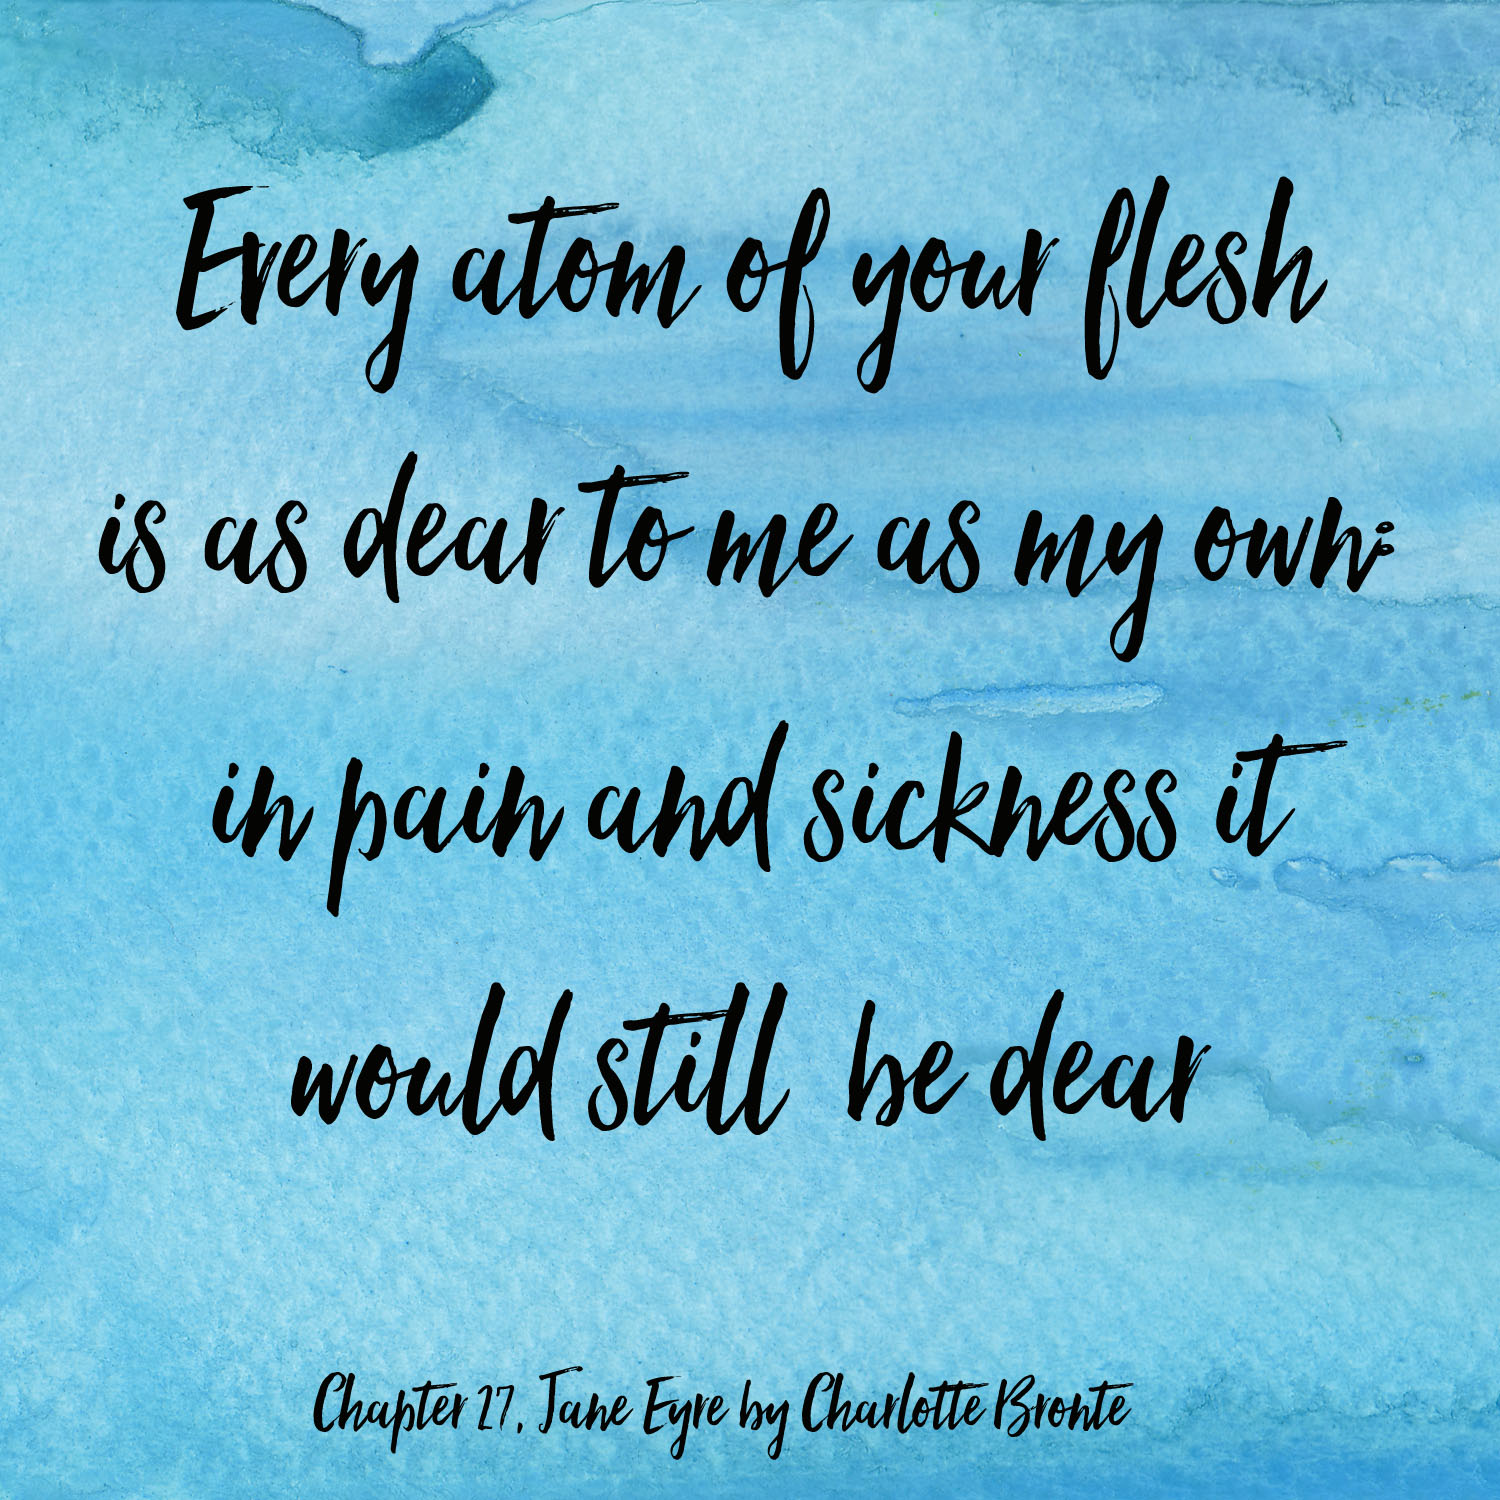 every atom of your flesh is as dear to me jane eyre quotes